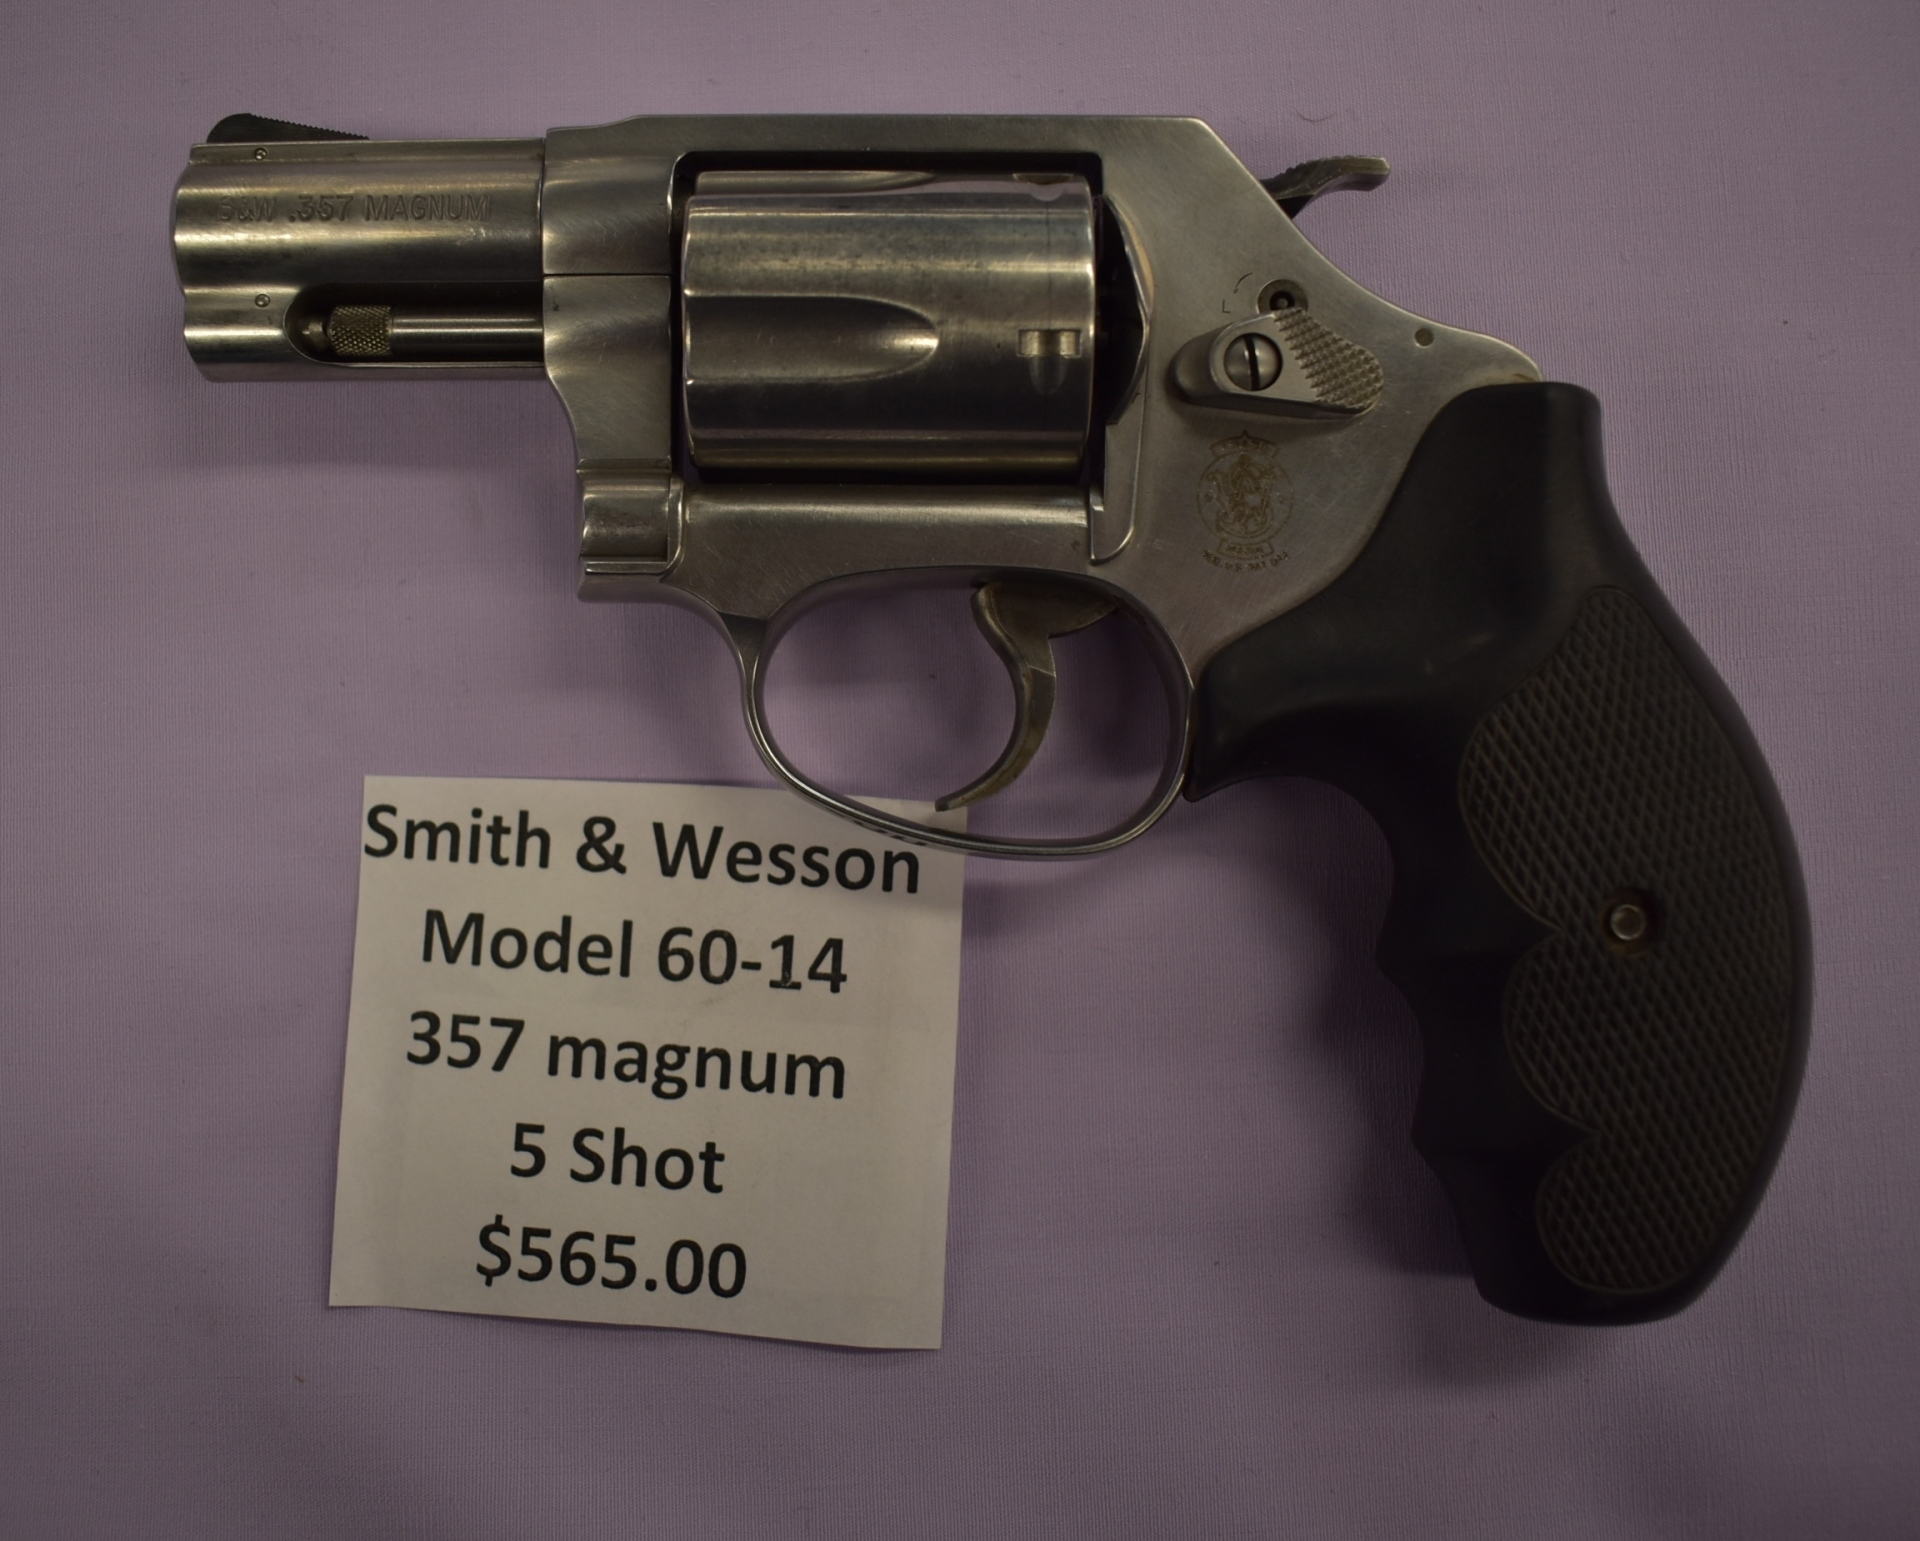 Smith & Wesson model 60-14